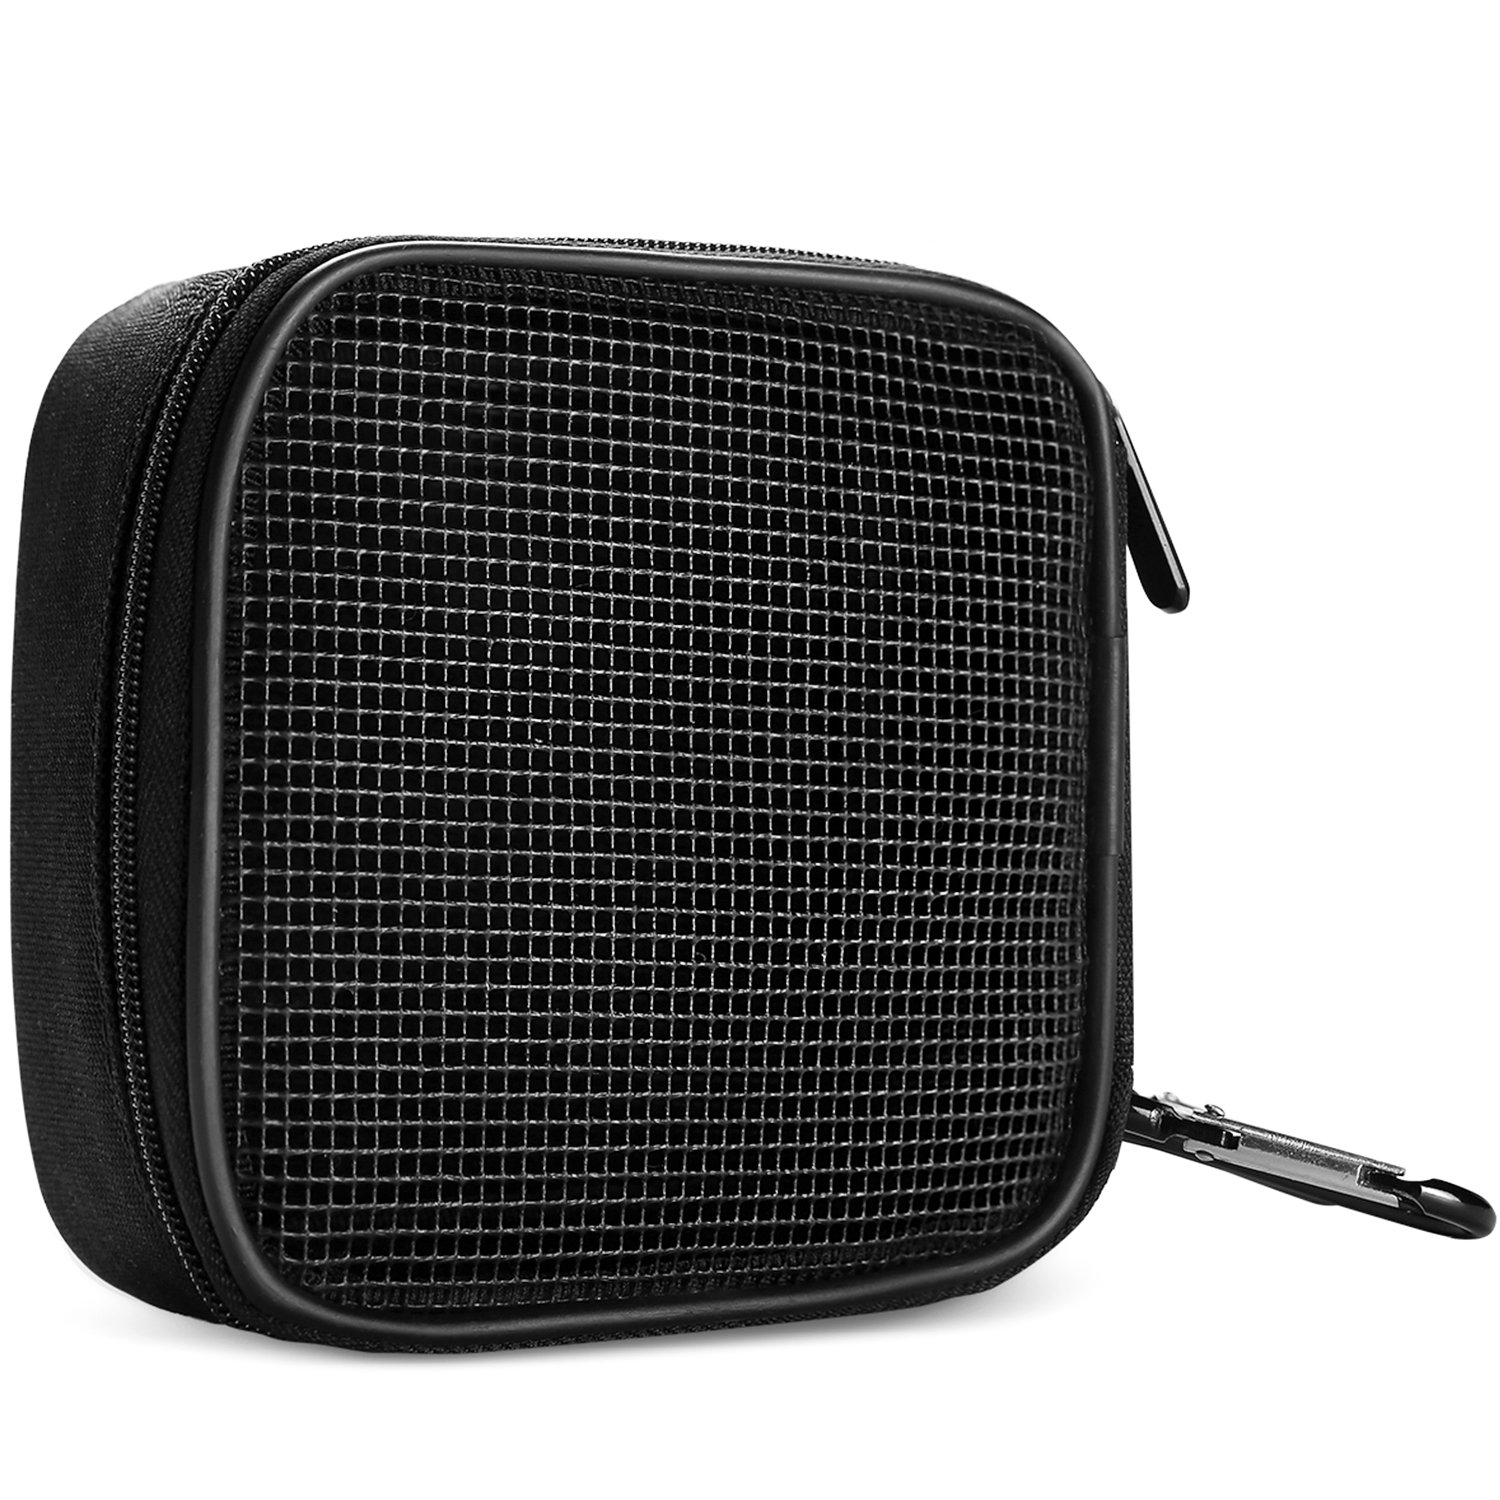 MacBook Power Adapter Bag Accessories Organizer, ProCase Portable Storage Carrying Bag for Apple MacBook Power Supply, Magic Mouse, Earphones and USB Flash Disk –Black